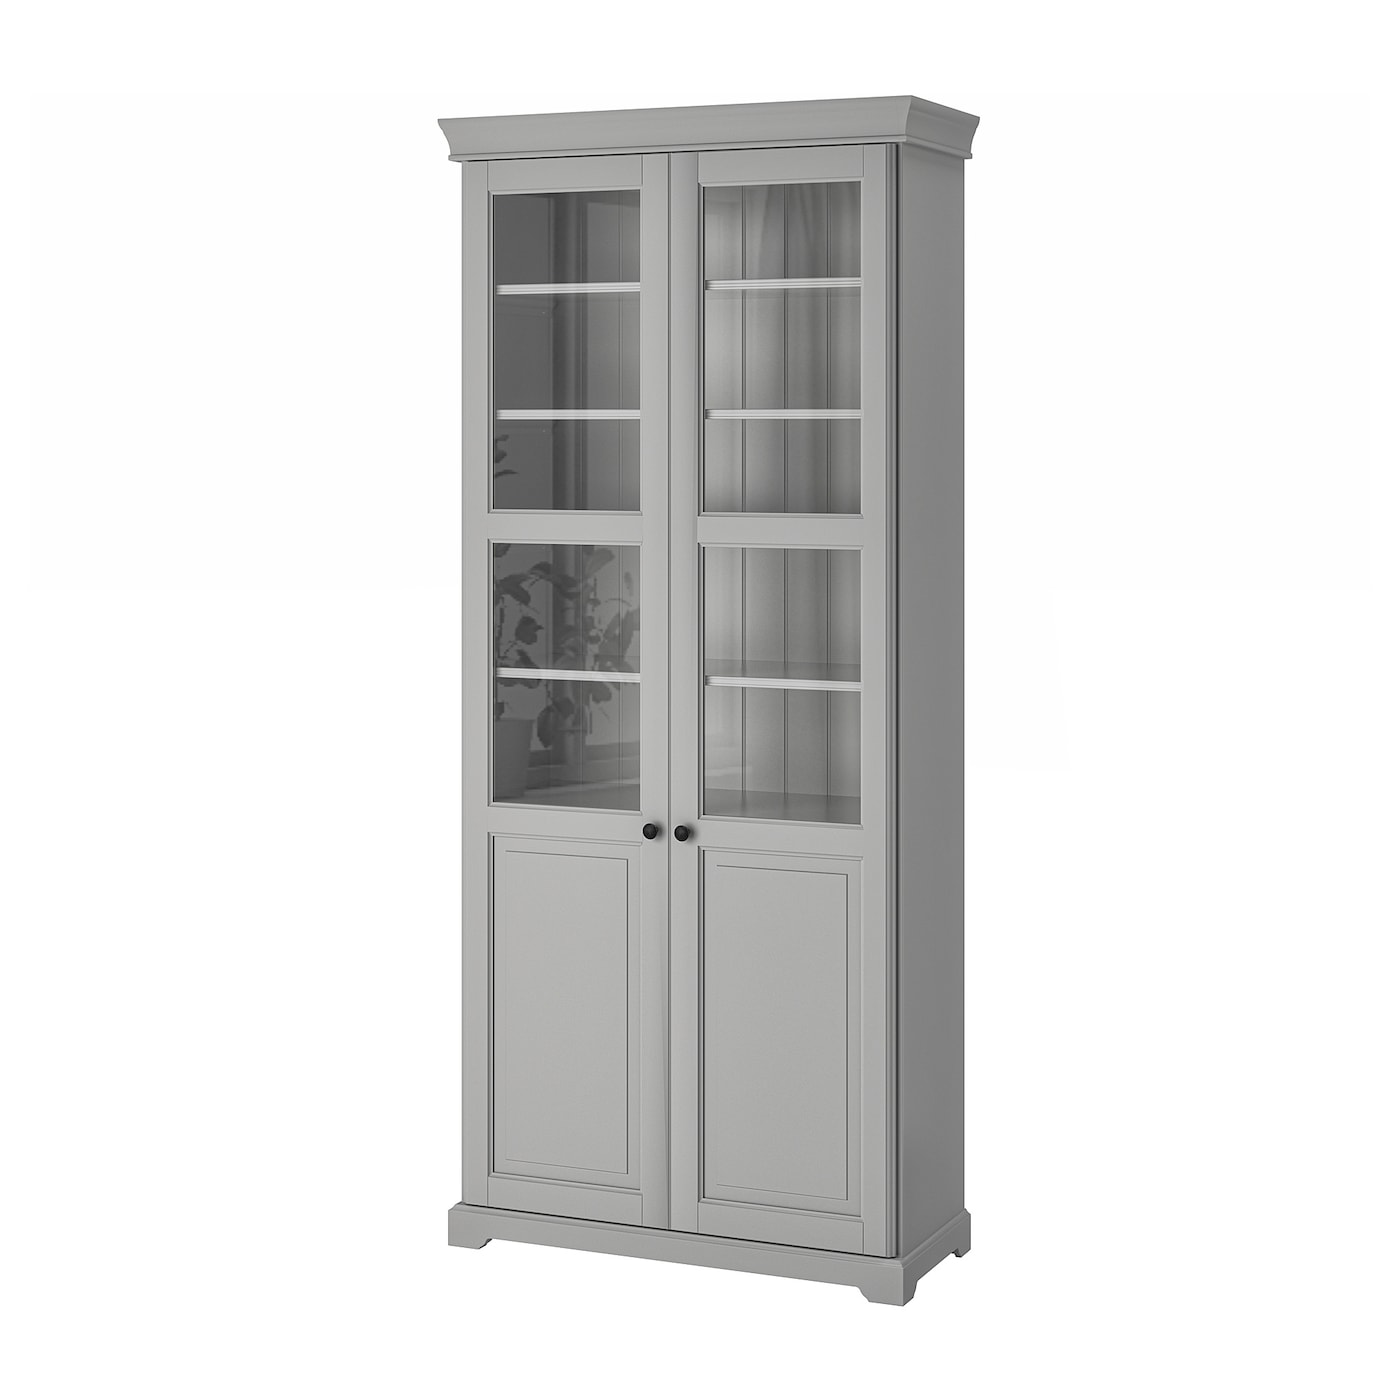 liatorp bookcase with glass doors grey 96 x 214 cm ikea. Black Bedroom Furniture Sets. Home Design Ideas